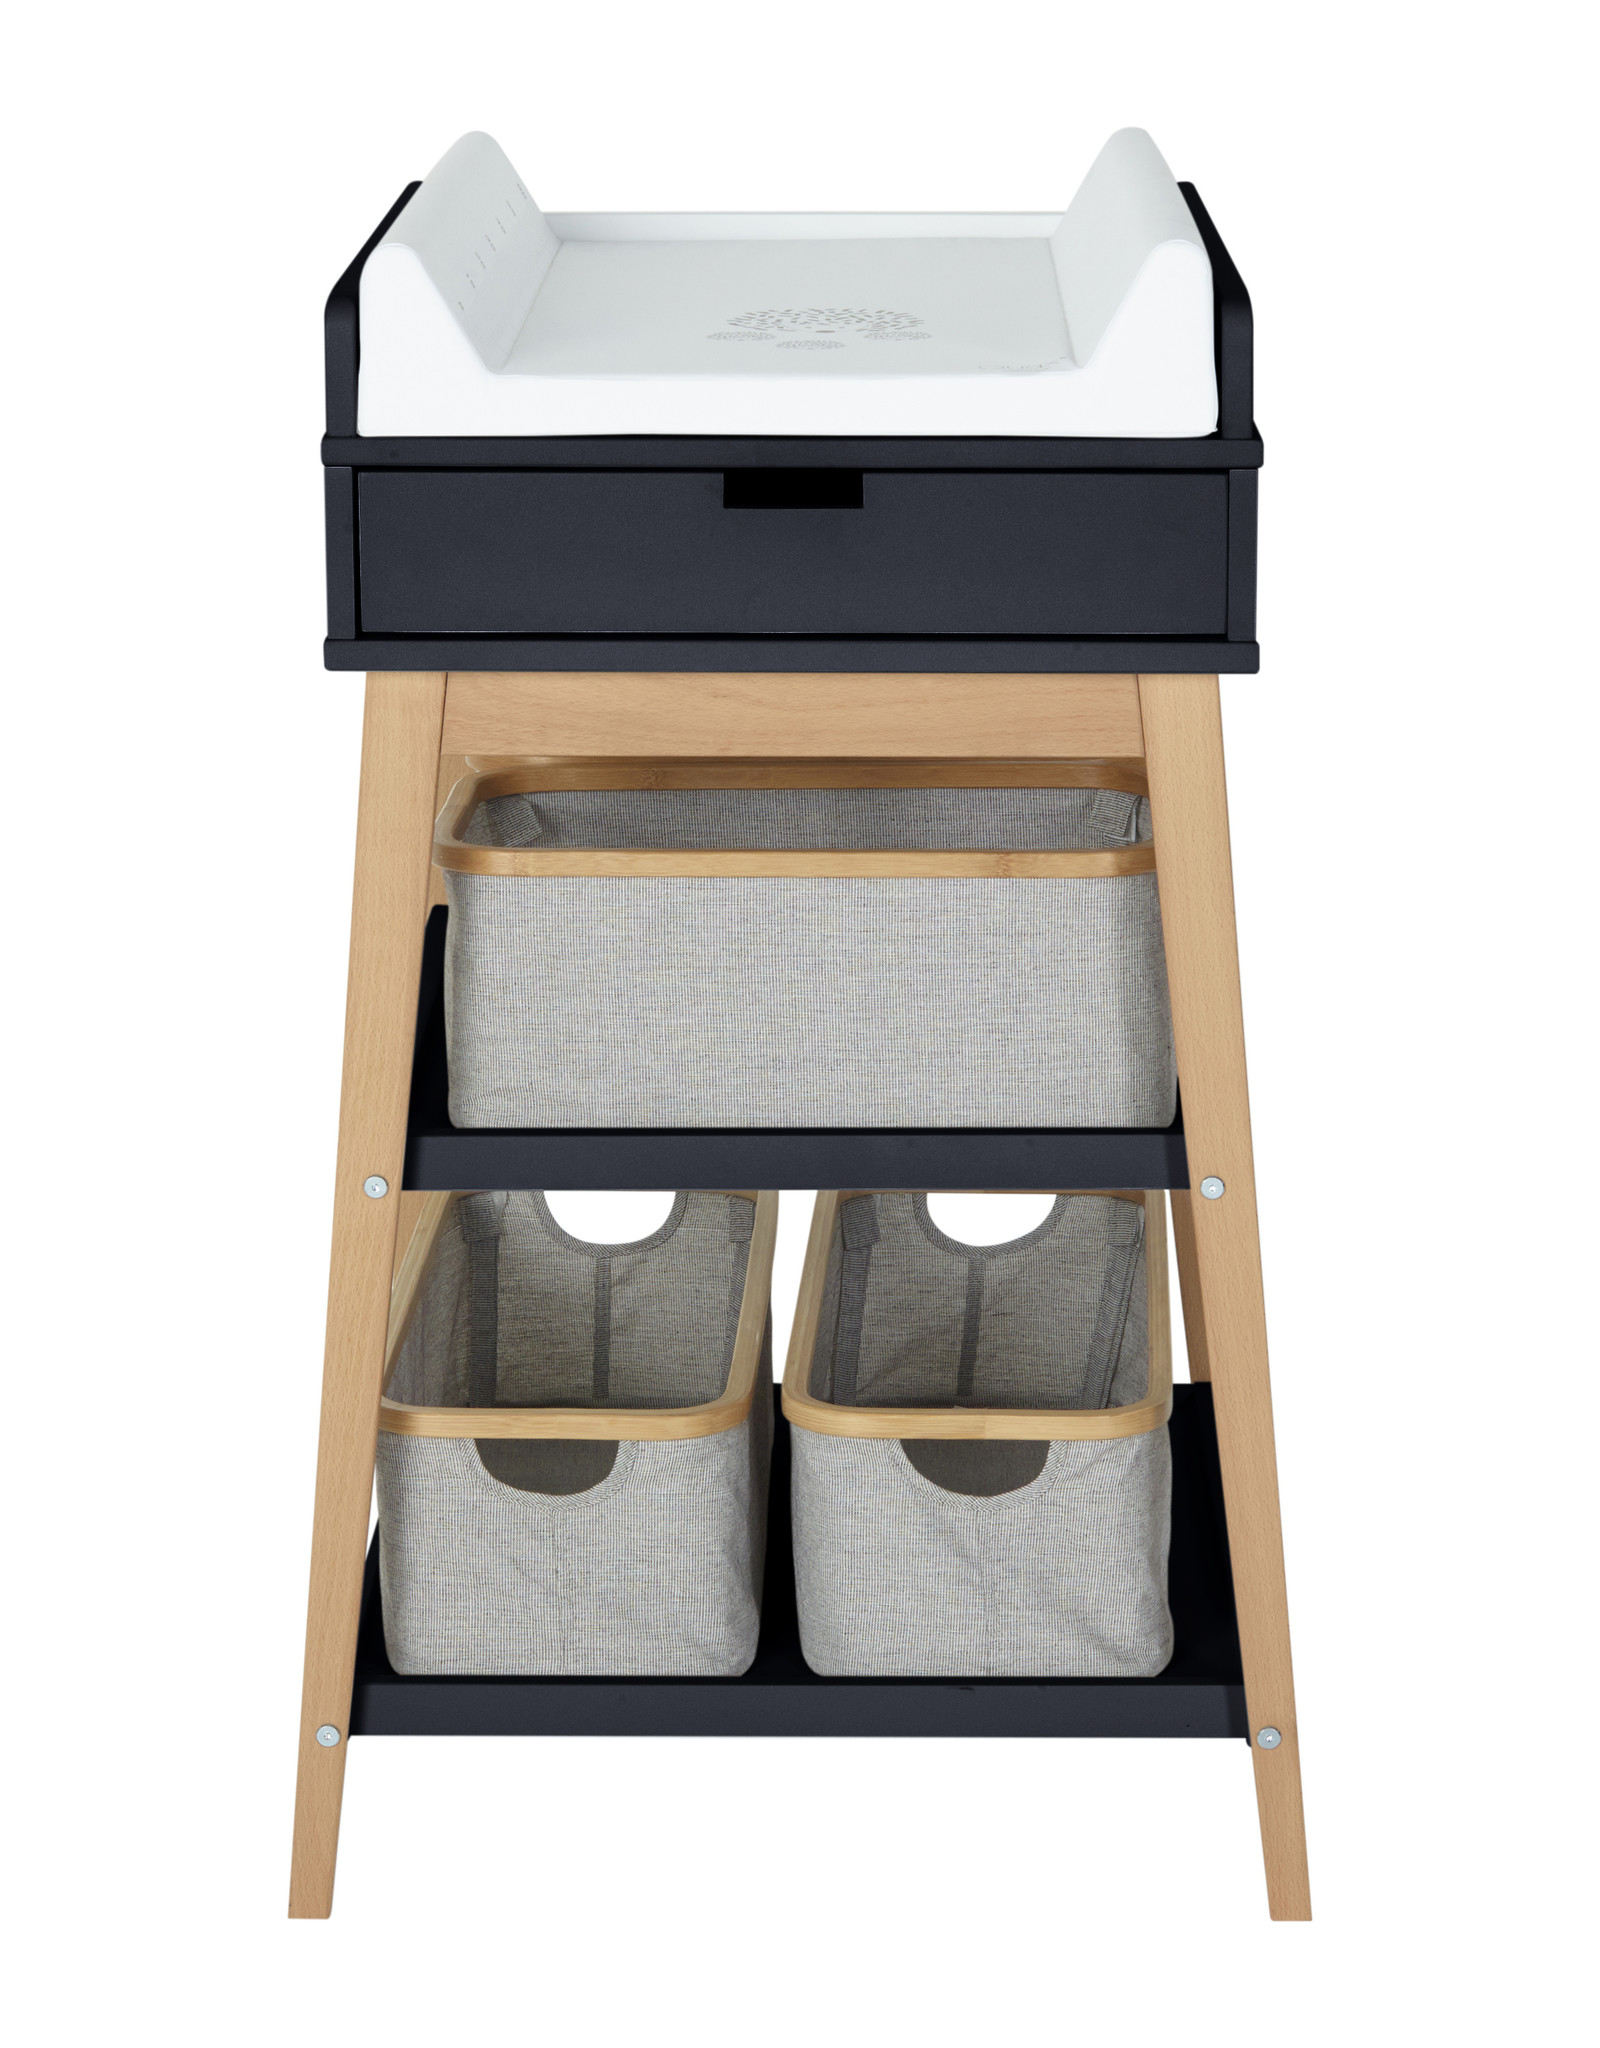 Quax Changing Table - Hip + Drawer - Moons./nature